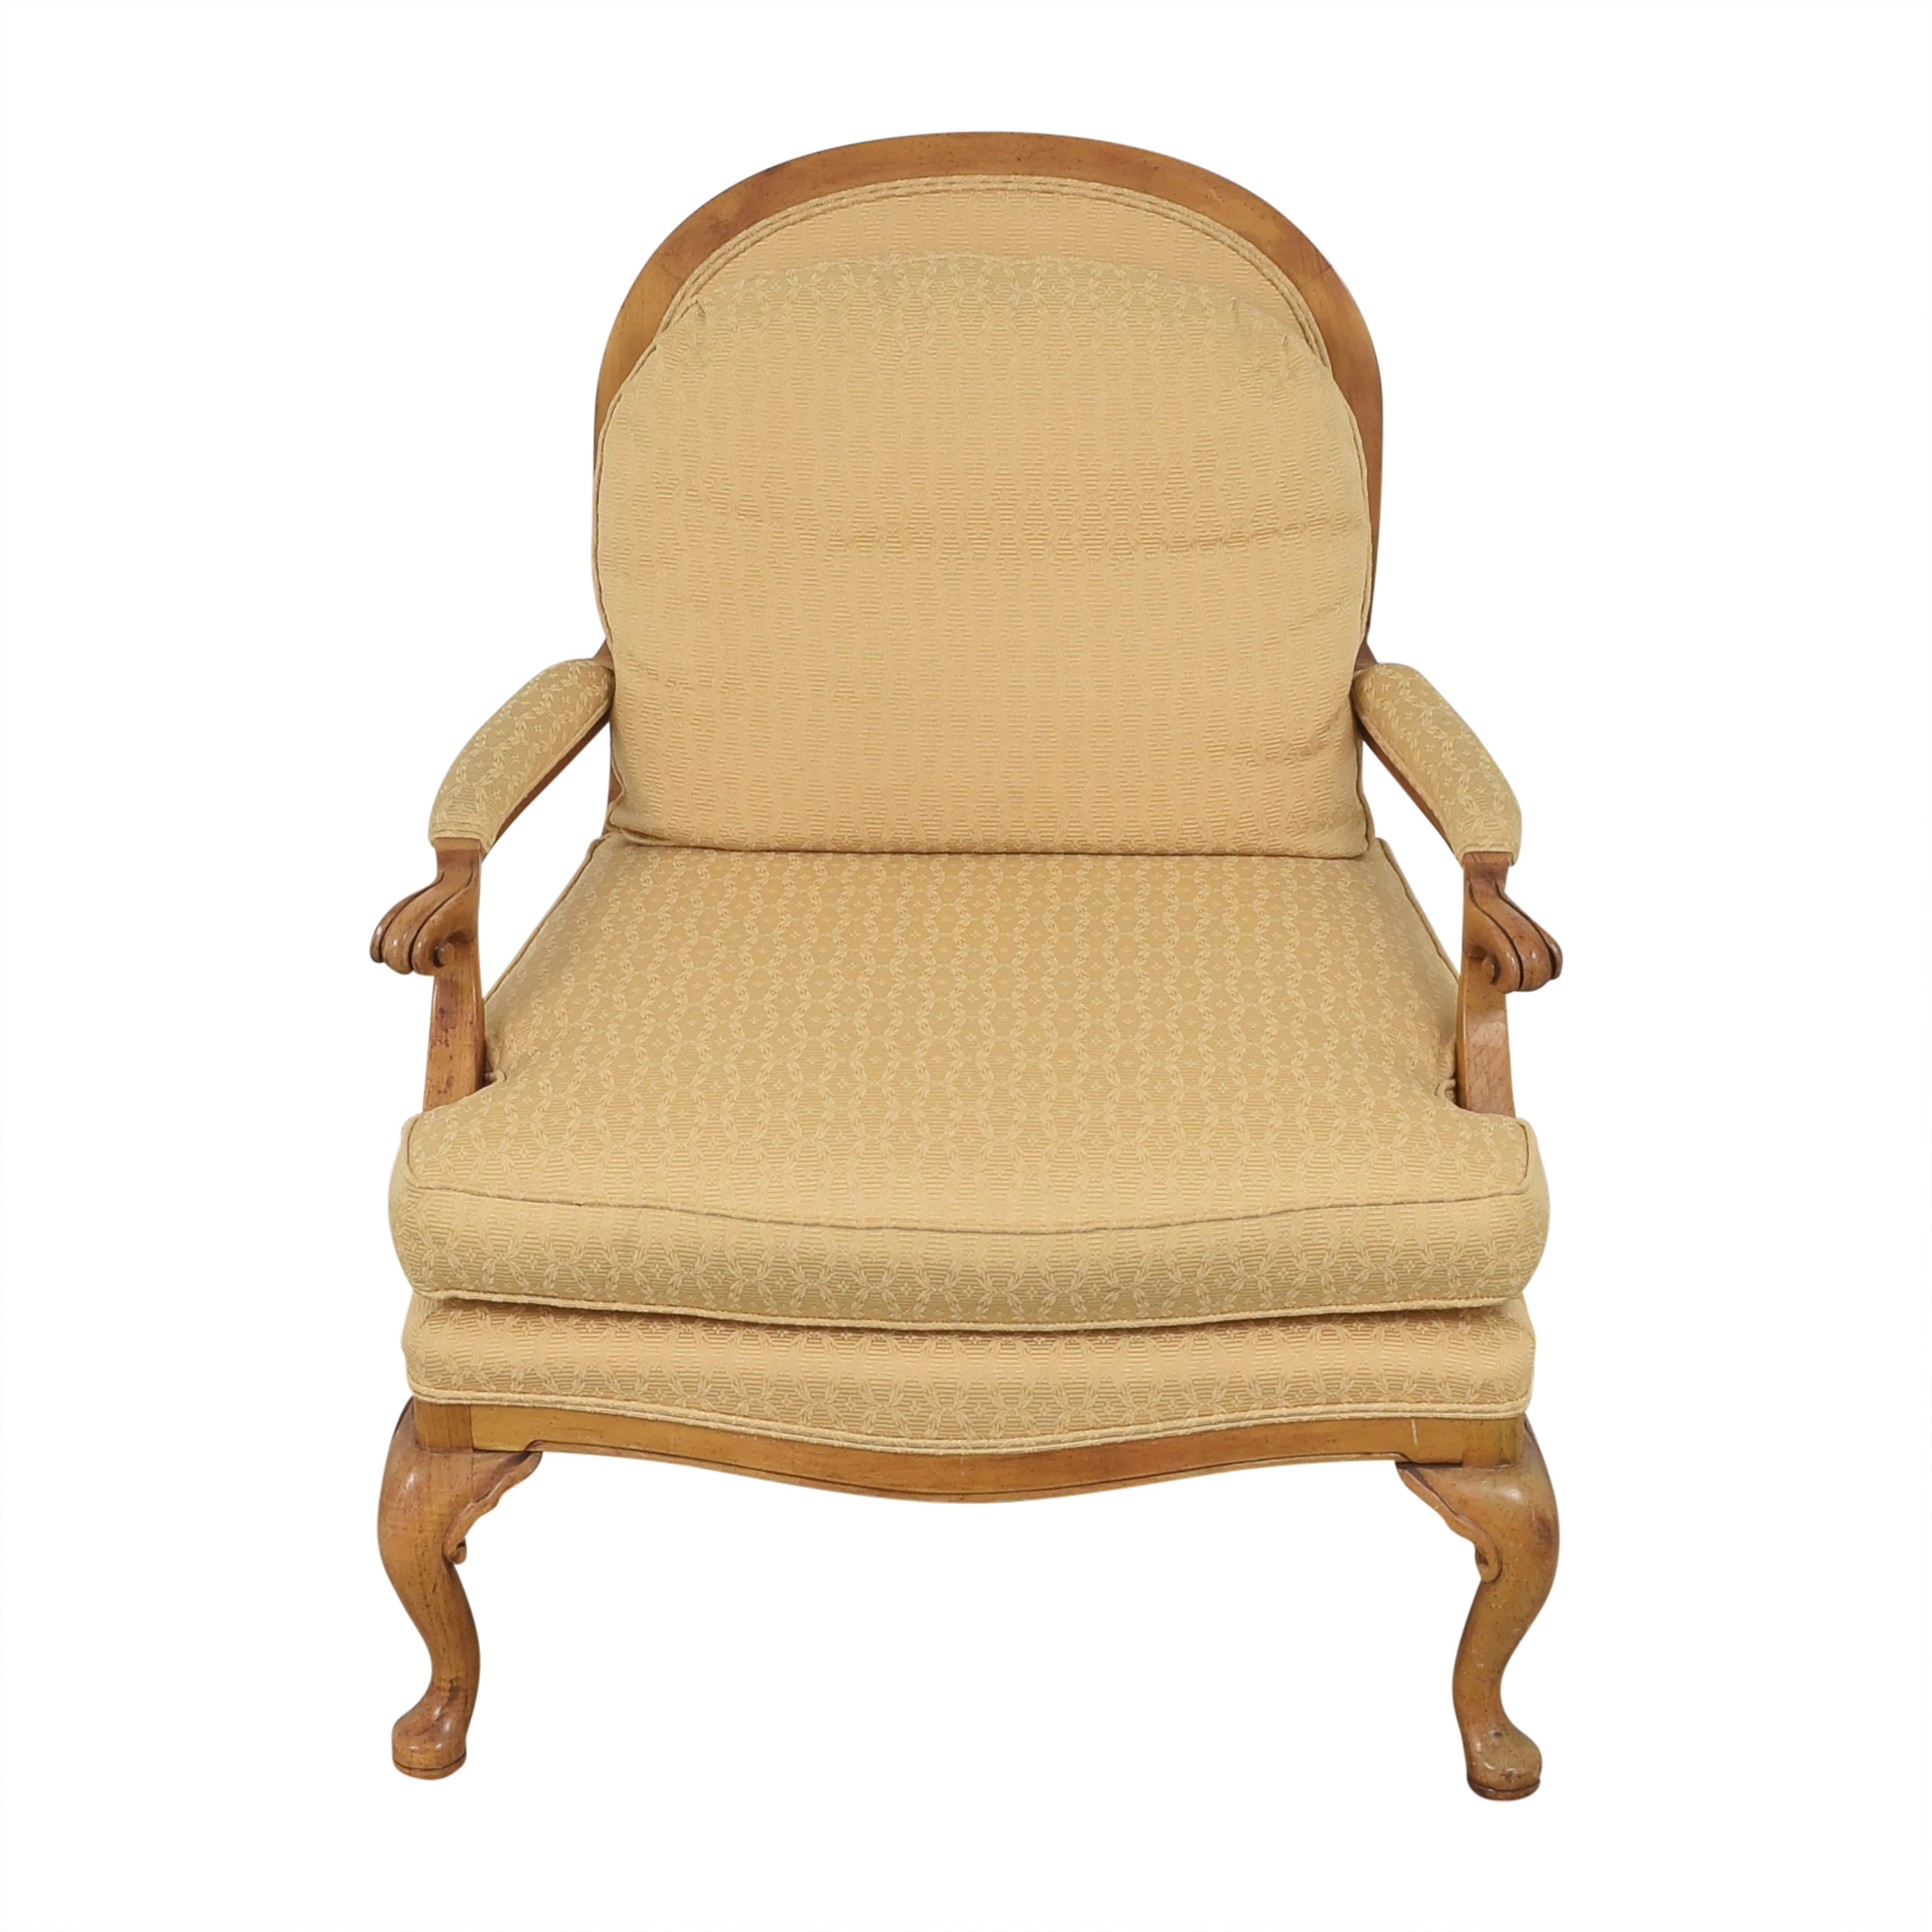 Highland House Furniture Highland House Accent Fauteuil Chair price